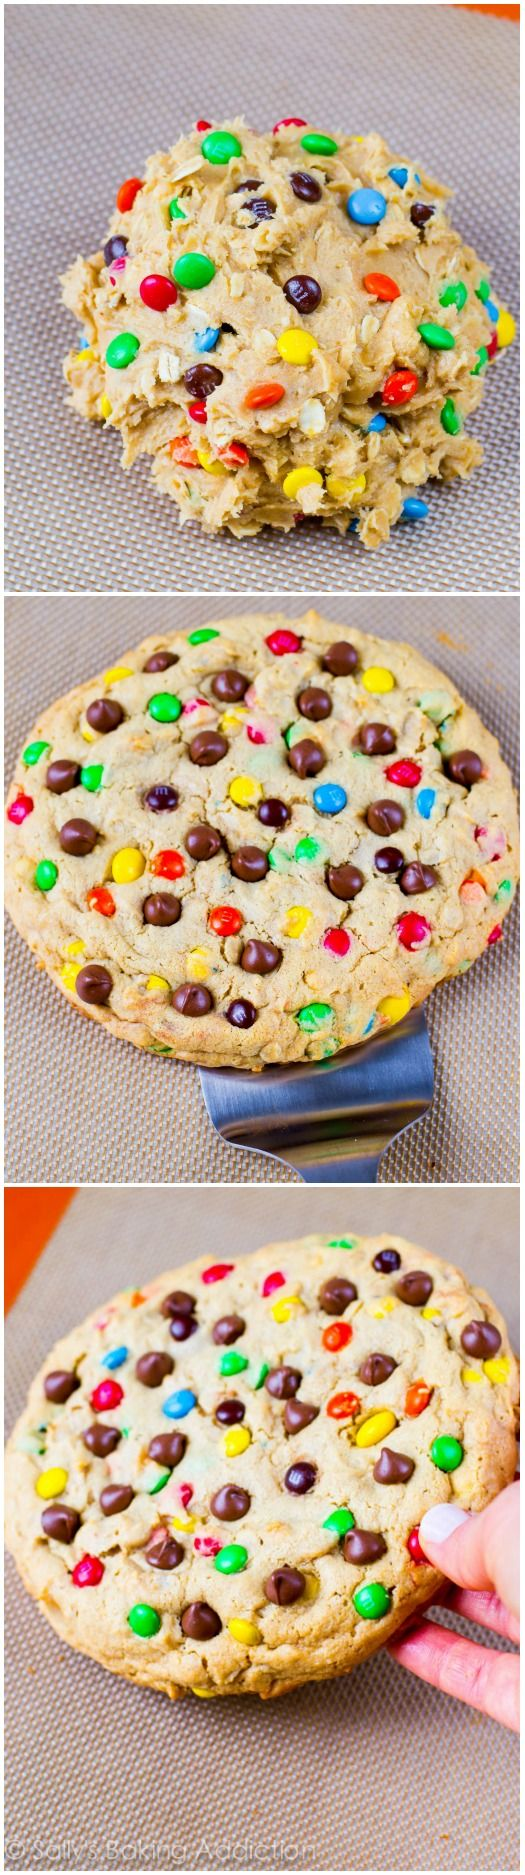 One giant peanut butter M&M cookie to cure even the largest peanut butter cookie craving!